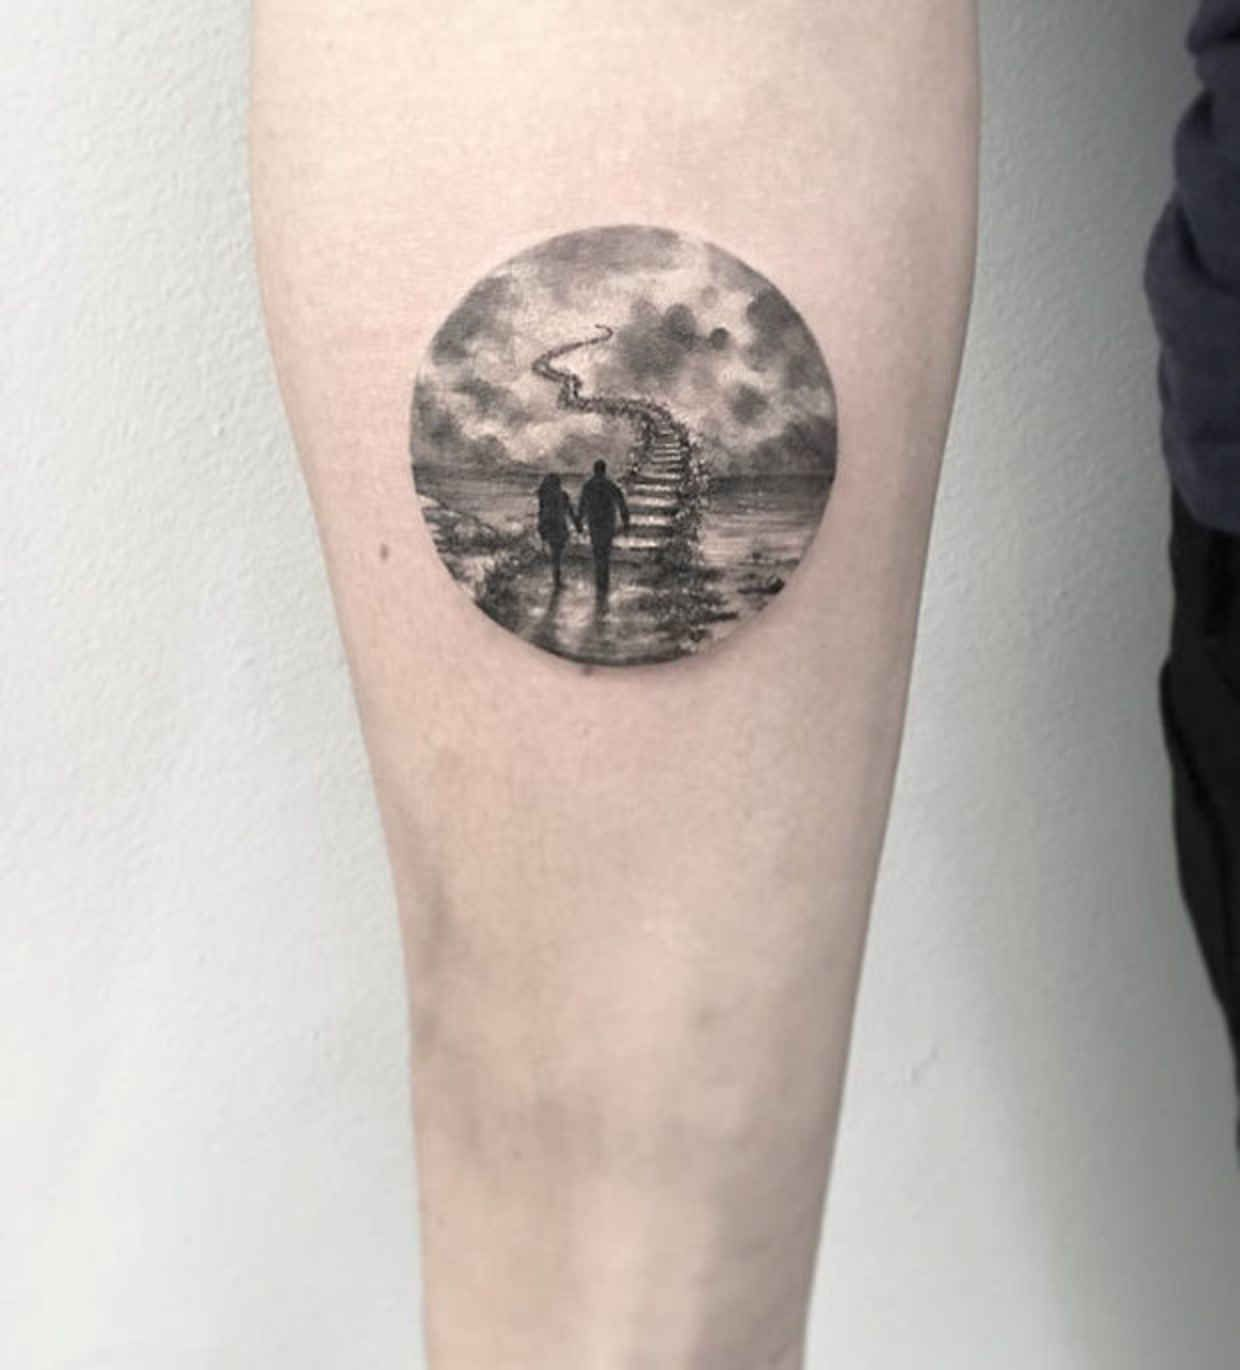 20 Detailed Tattoos That Fit Perfectly Into Small Circles